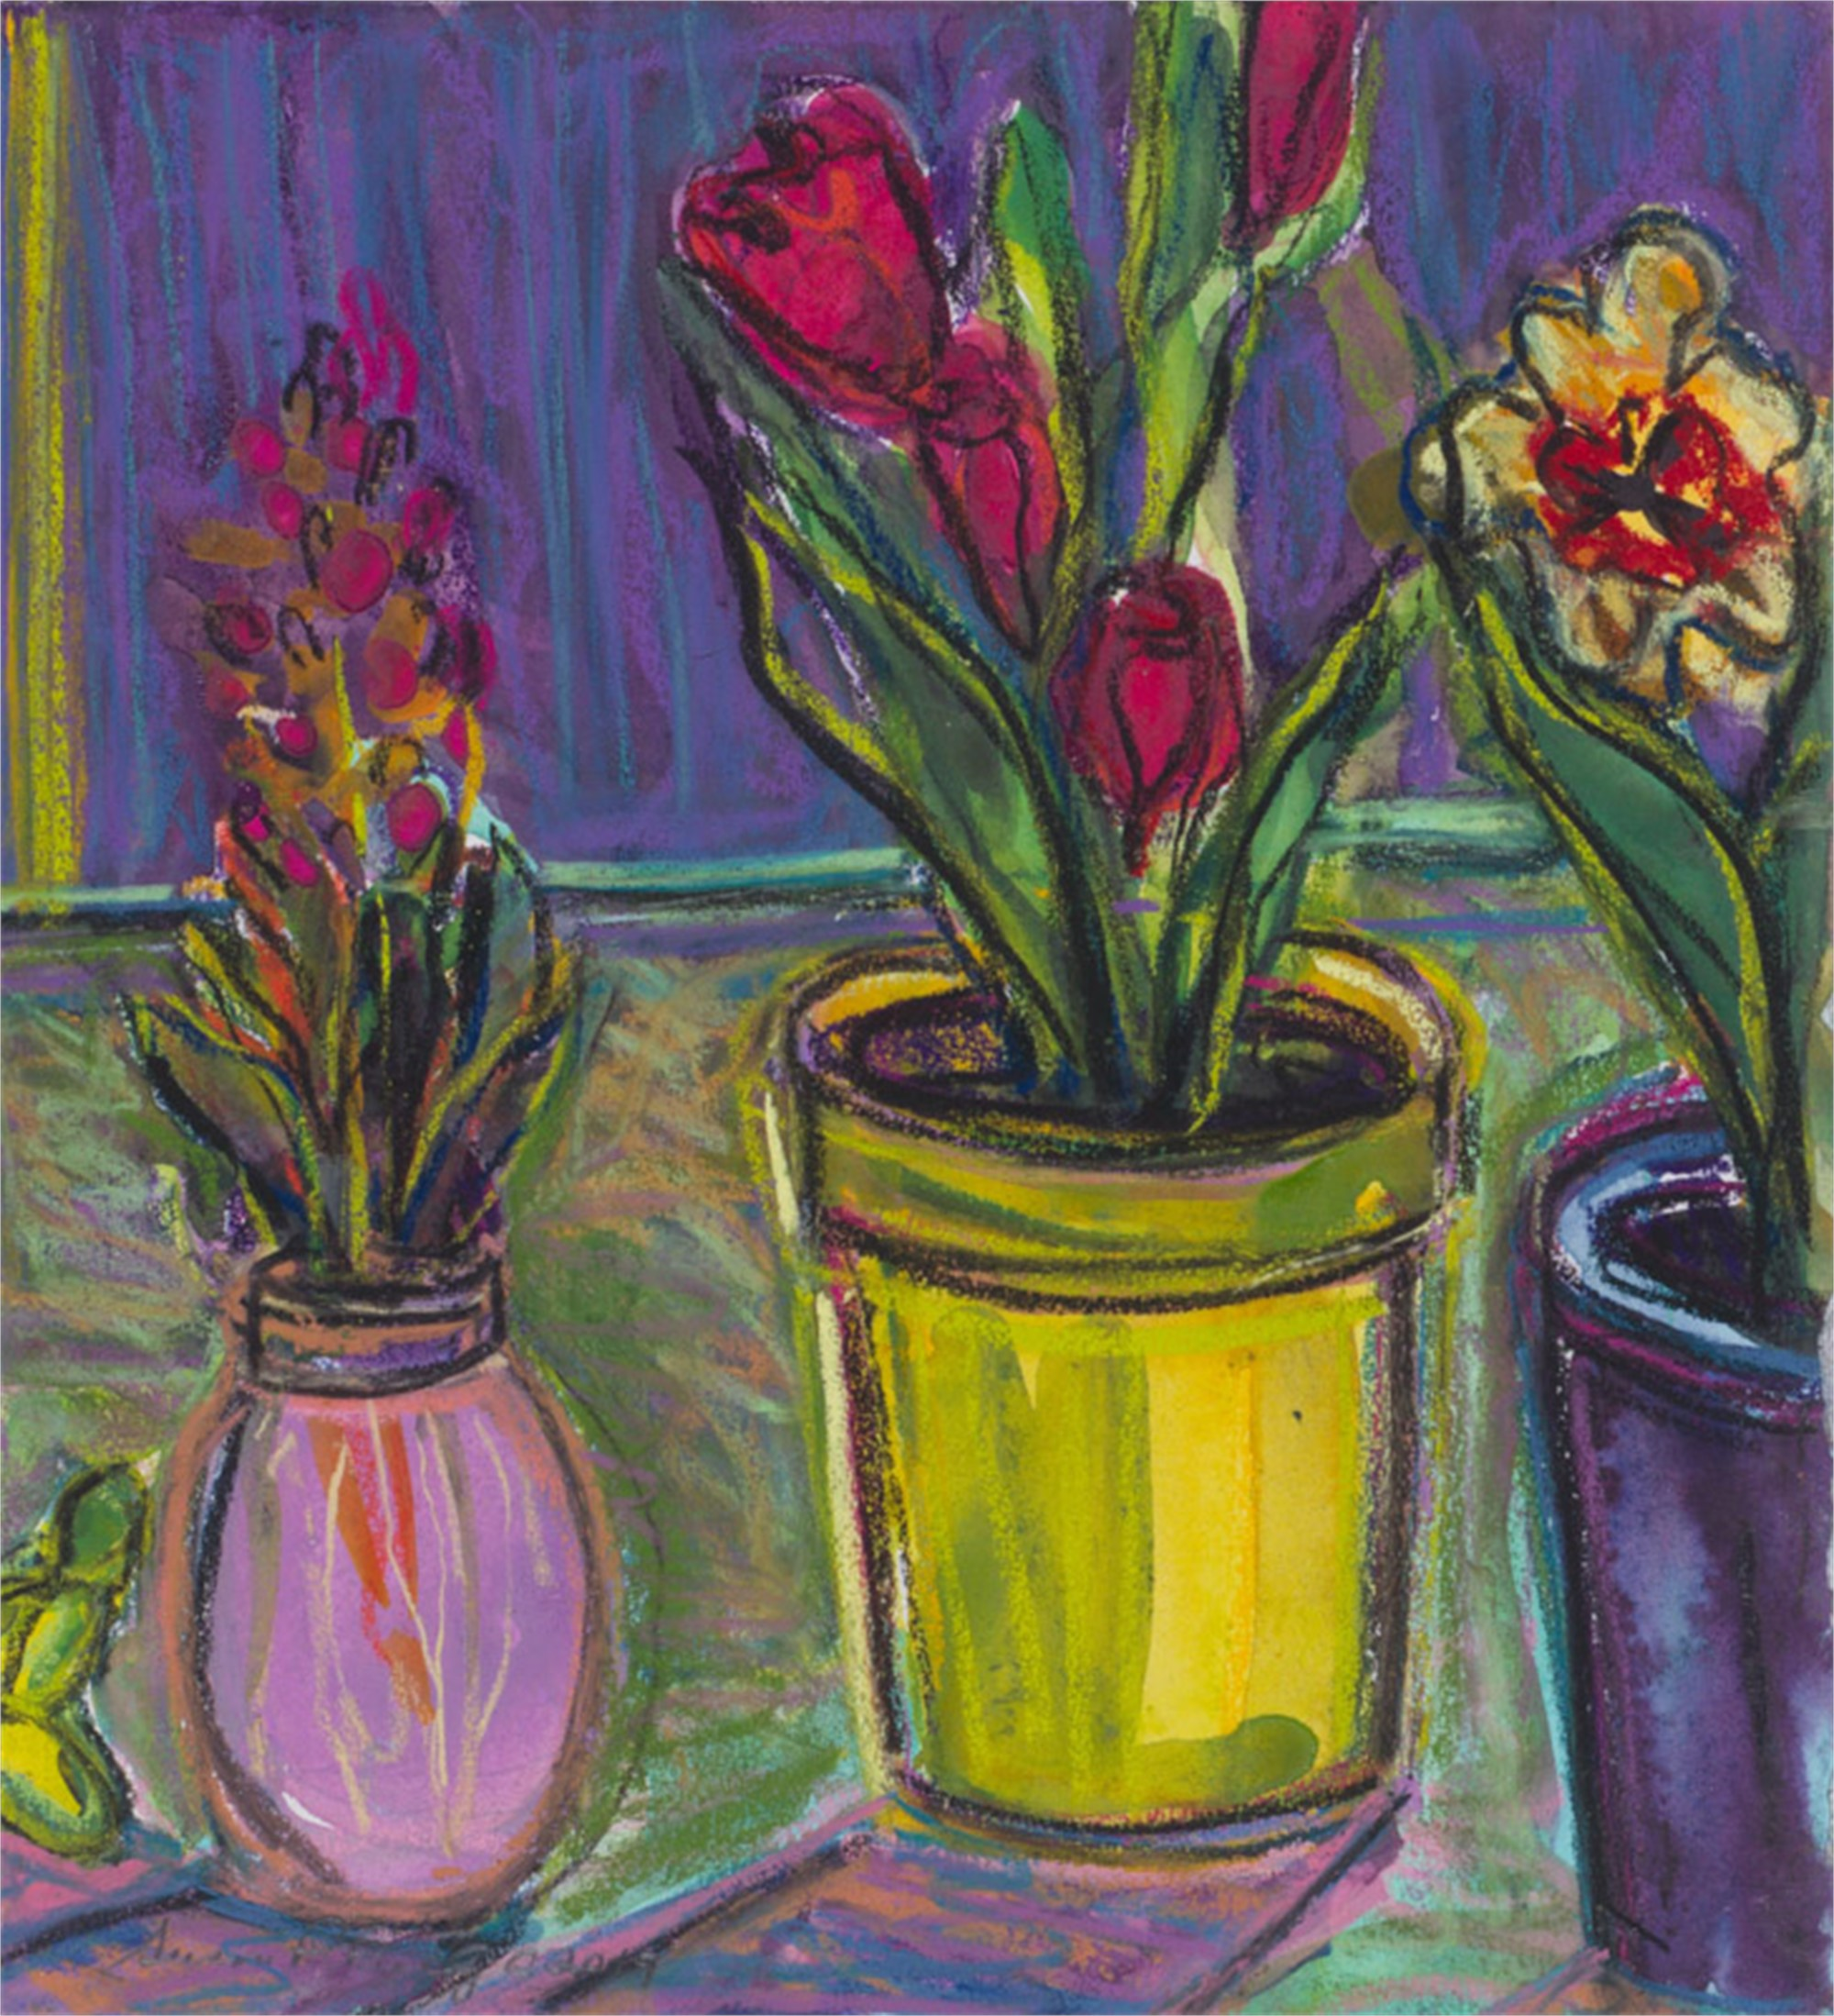 Hyacinth and Tulips I by Susan Puelz